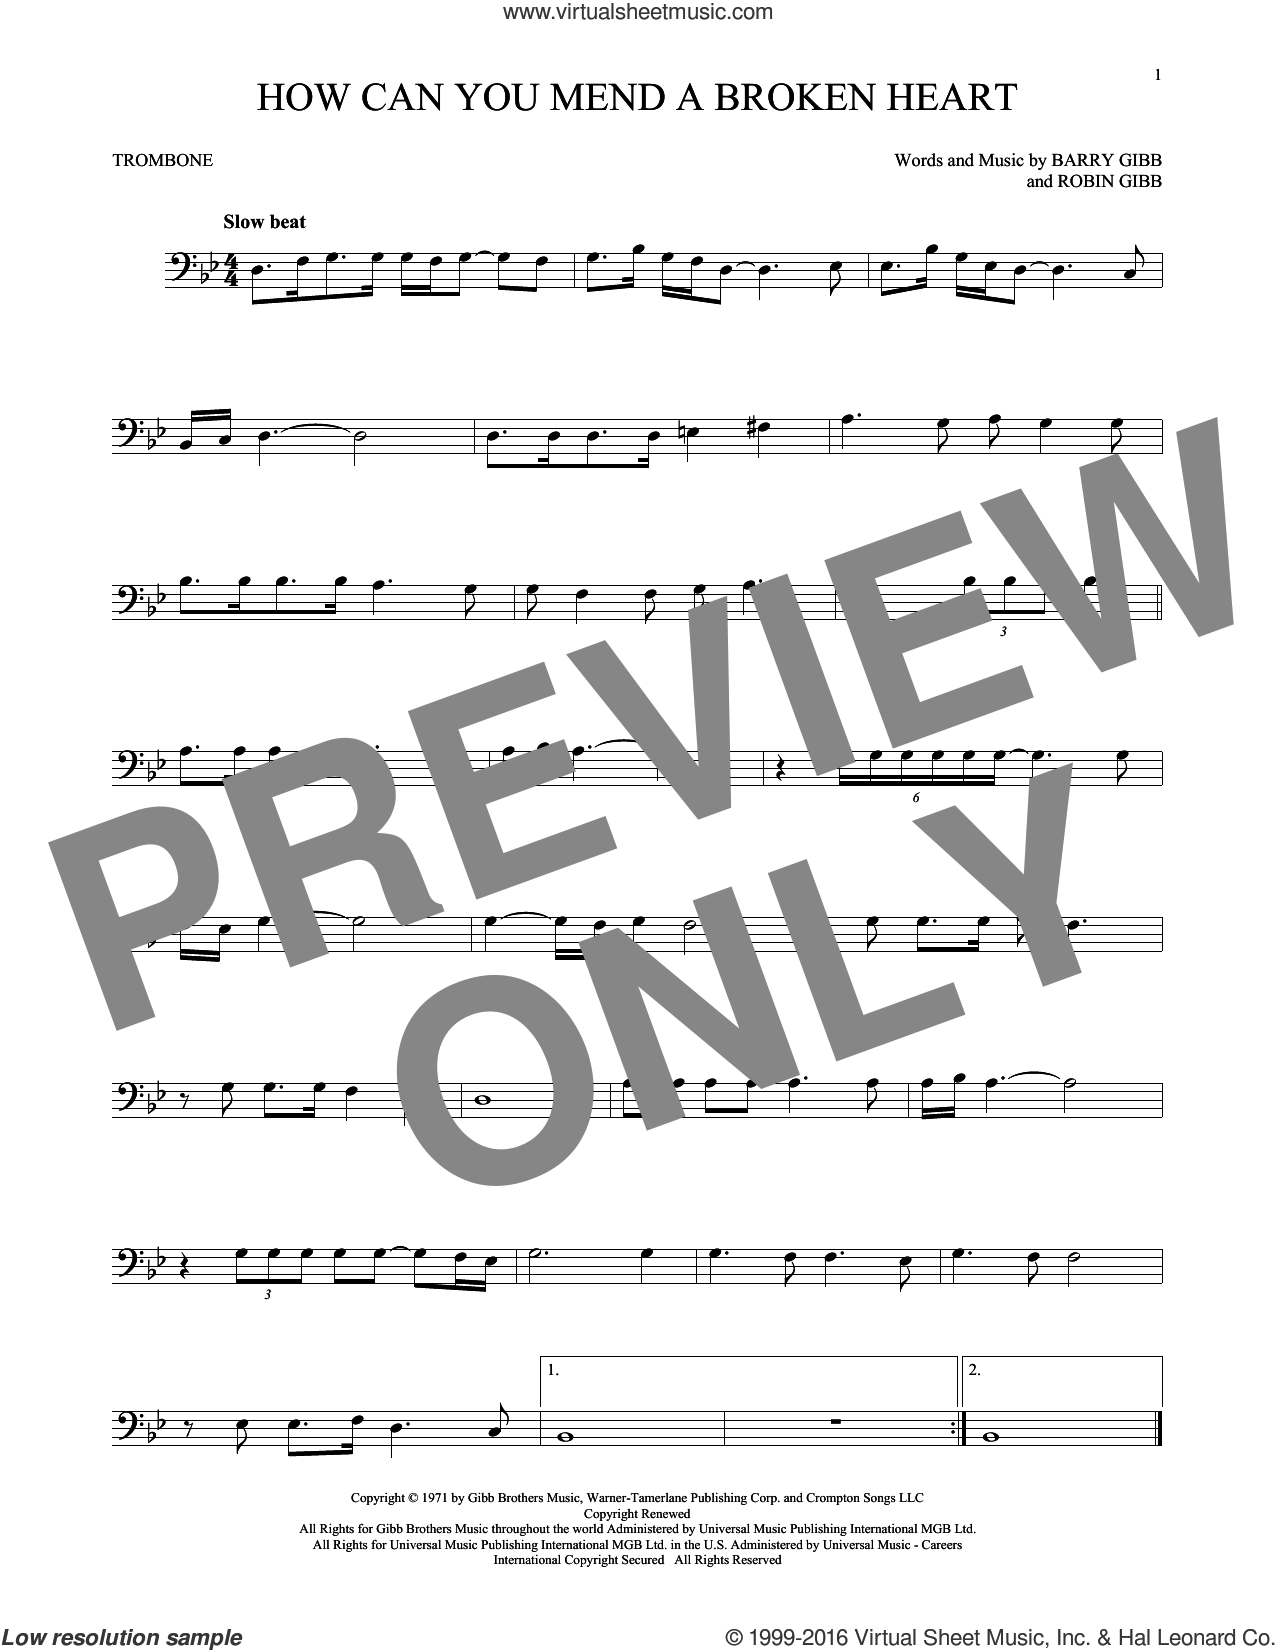 How Can You Mend A Broken Heart sheet music for trombone solo by Bee Gees, Barry Gibb and Robin Gibb, intermediate skill level